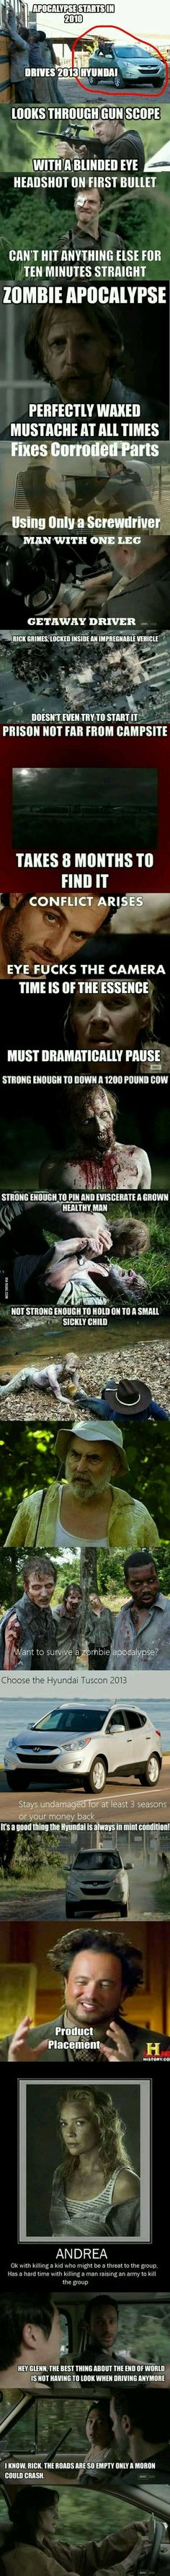 The Walking Dead logic - 9GAG